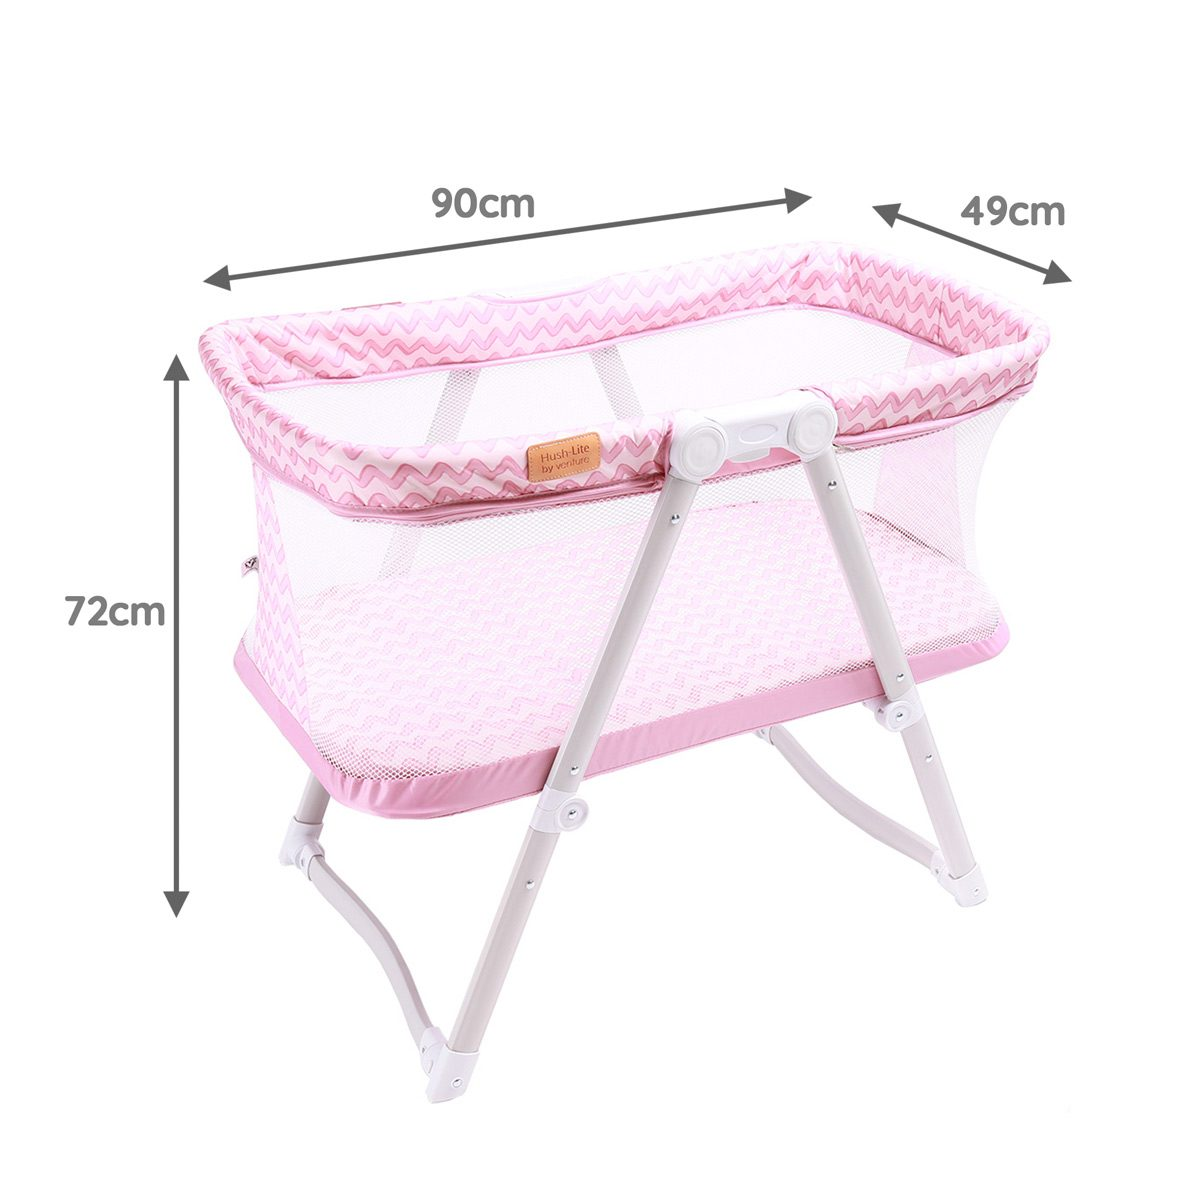 Hush-Lite Travel Crib Dimensions for Pink